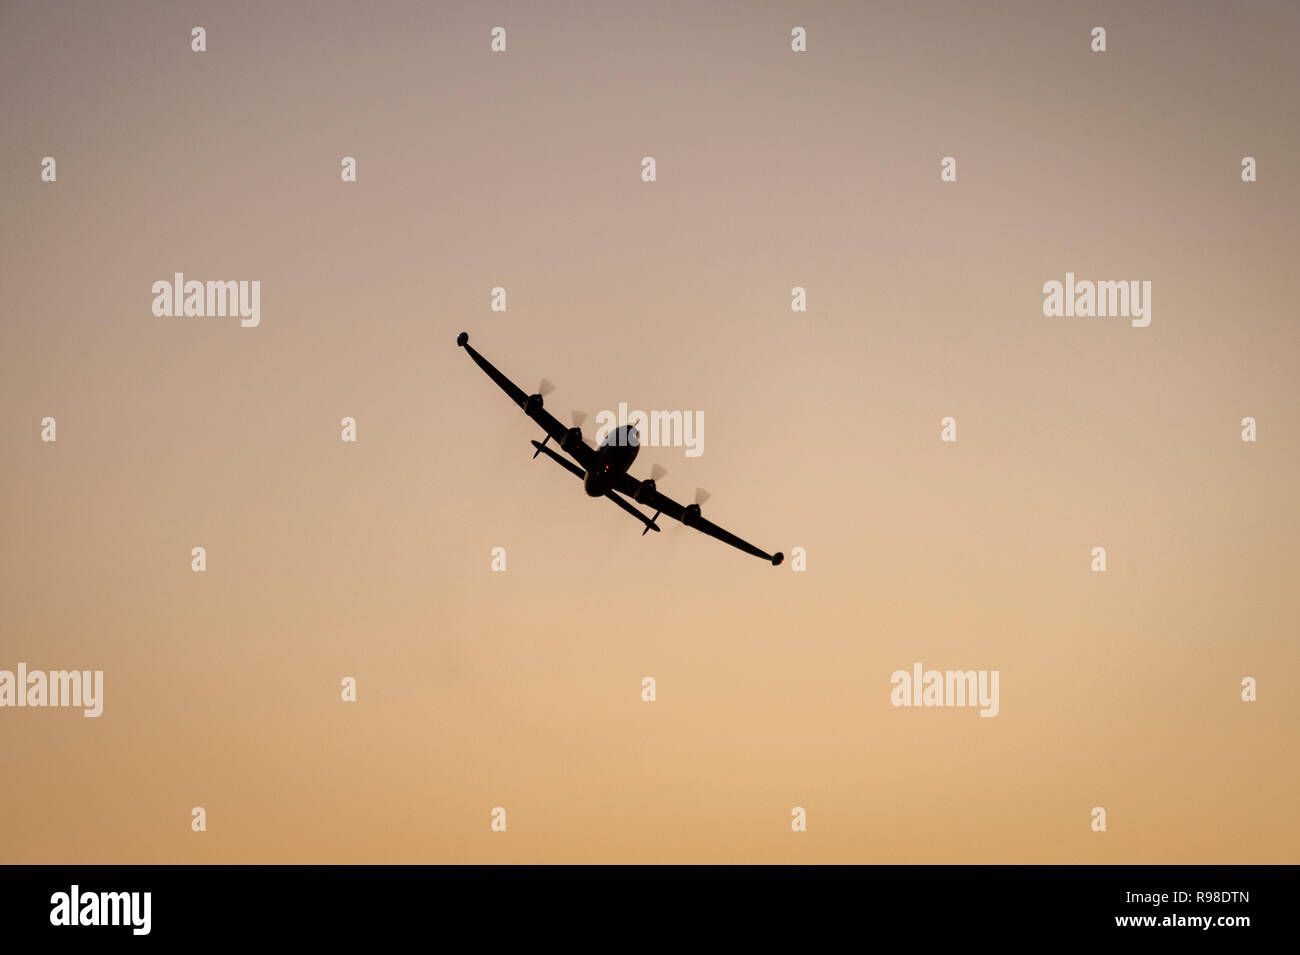 Vintage four prop passenger airplane in silhouette against an orange evening sunset - Stock Image